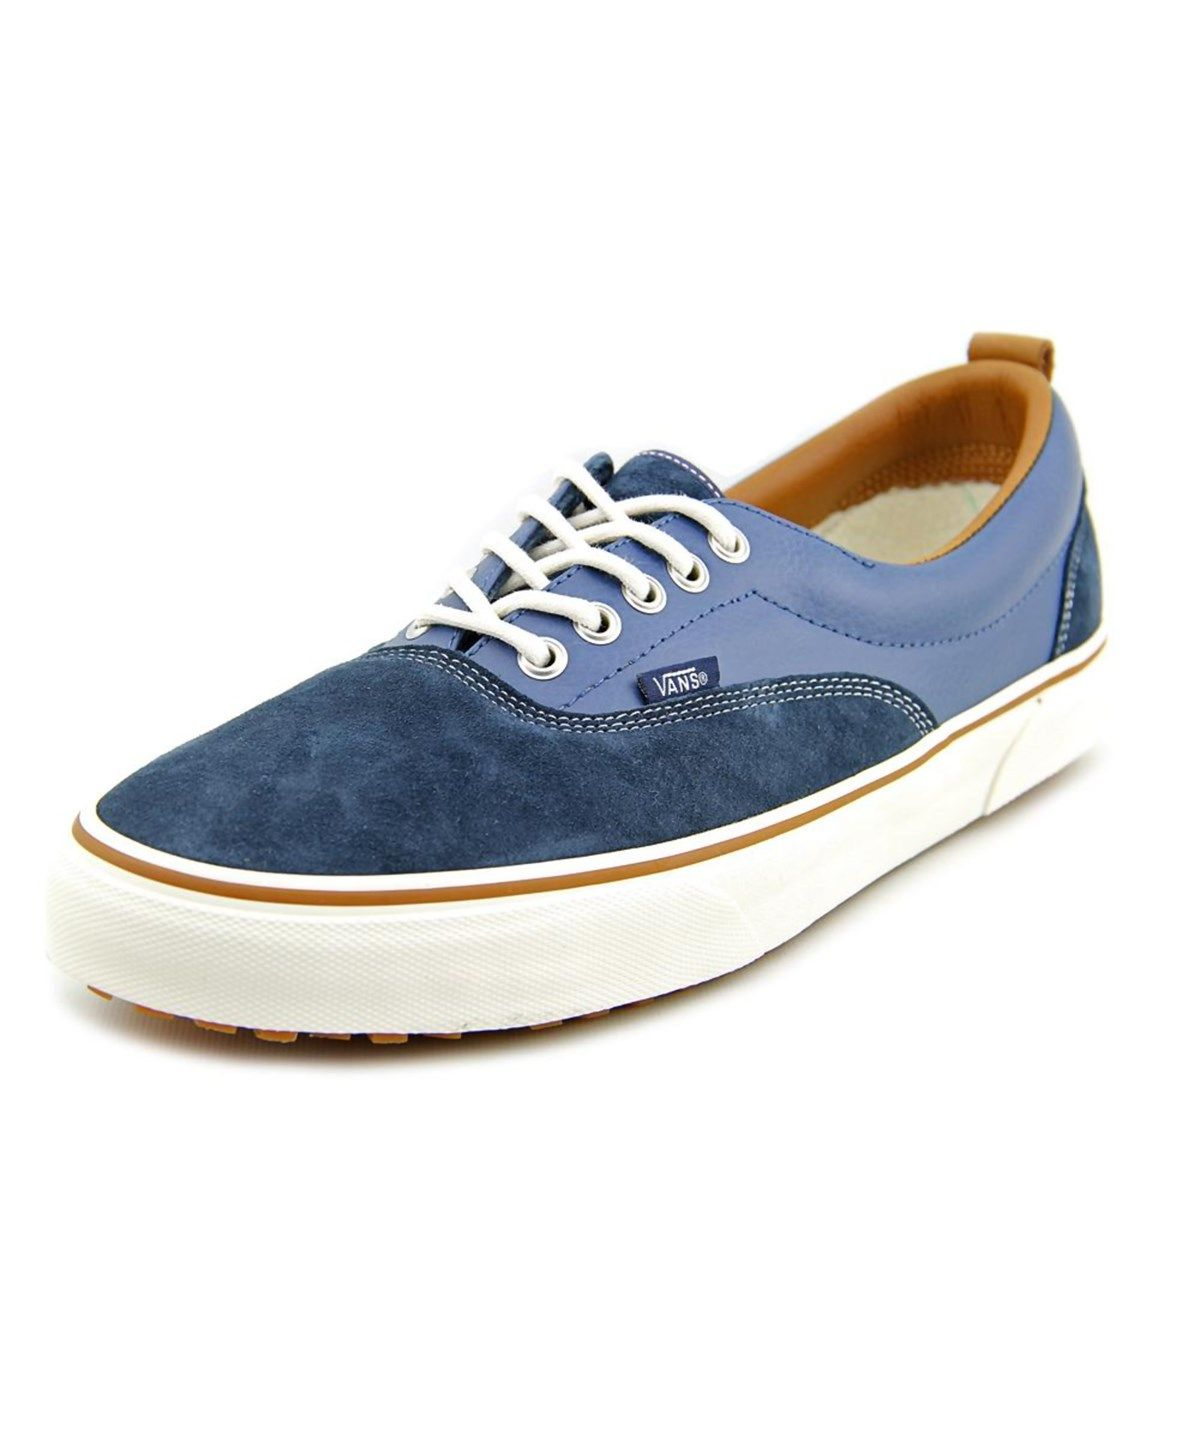 4262e952a4a0be VANS Vans Era Mte Men Round Toe Leather Blue Skate Shoe .  vans  shoes   sneakers